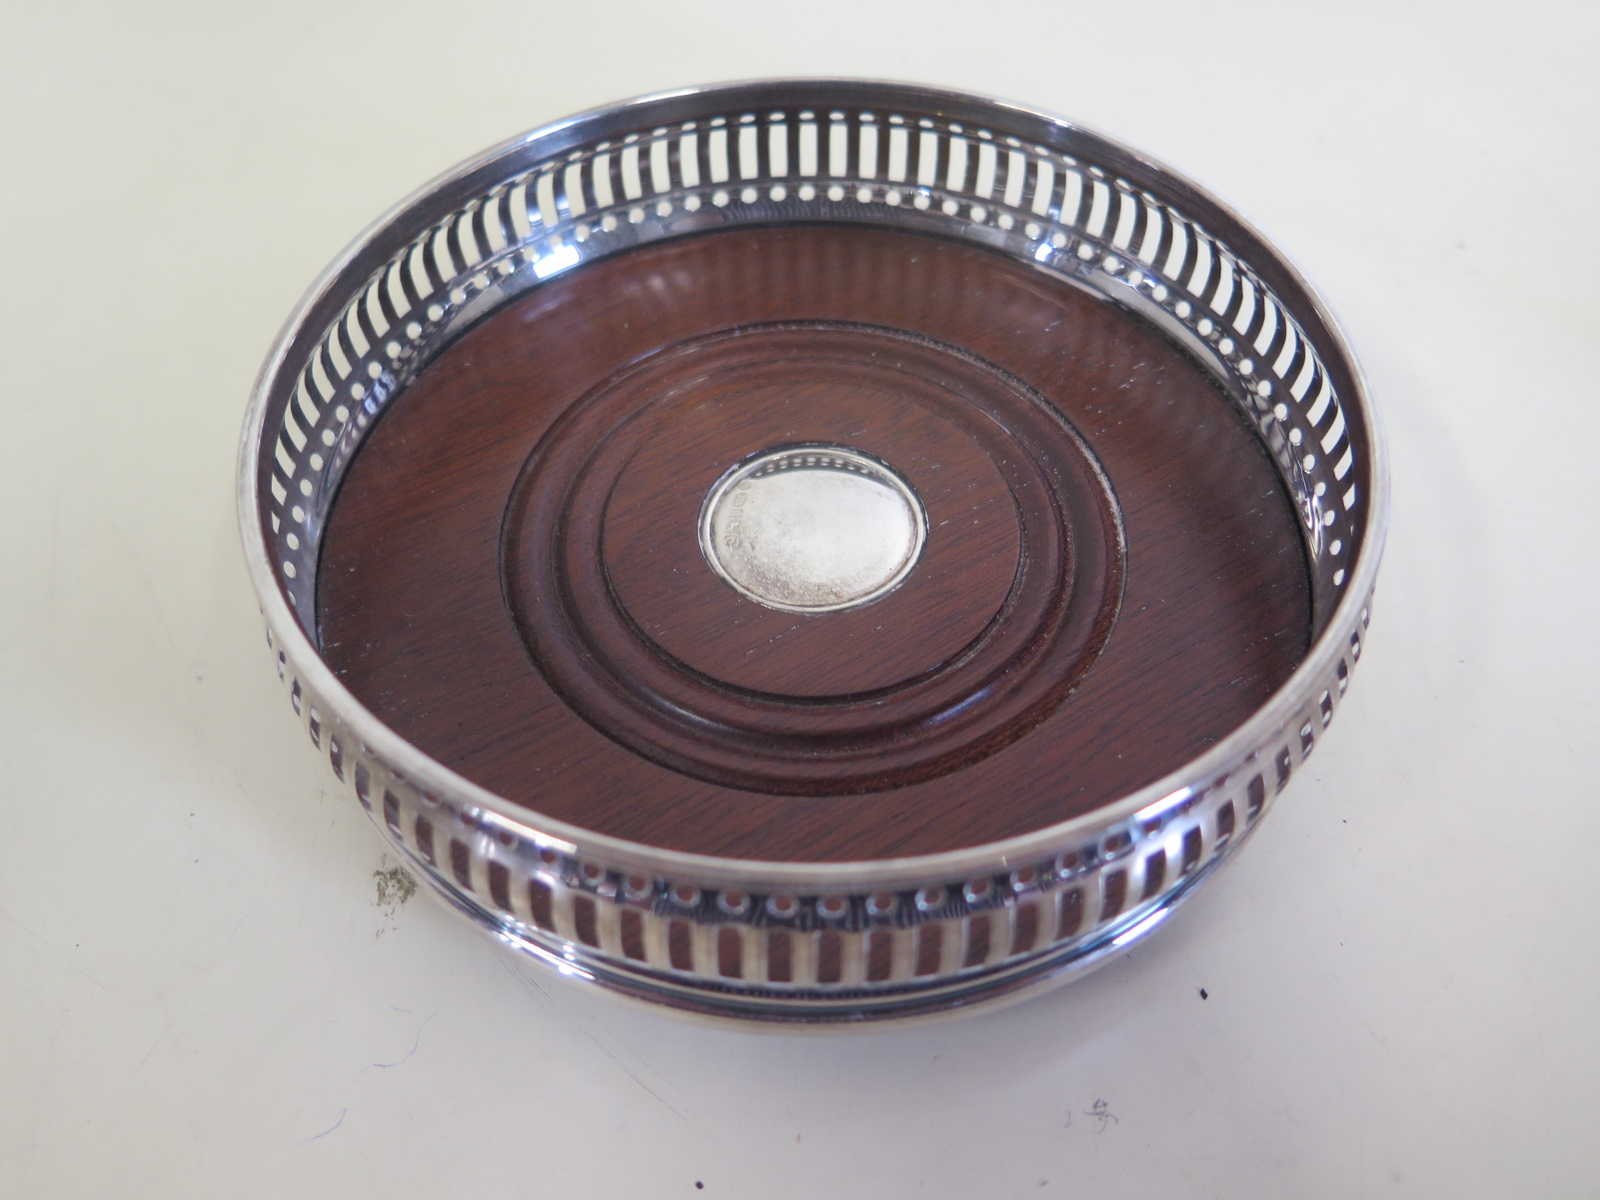 Lot 593 - A pierced silver coaster with wood base and silver button, approx 13cm diameter, in good condition